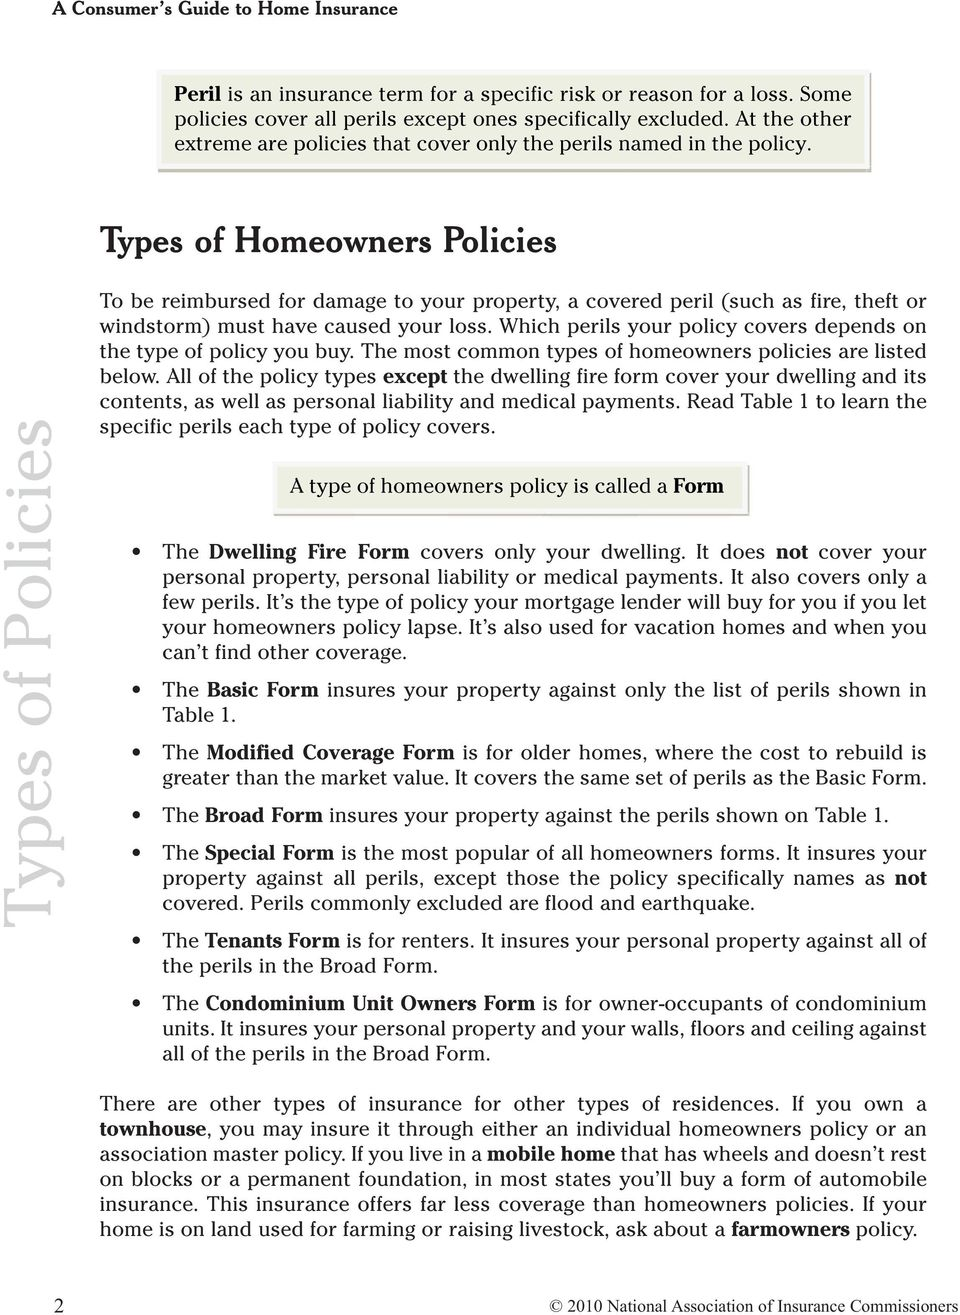 All of the policy types except the dwelling fire form cover your dwelling and its contents, as well as personal liability and medical payments.